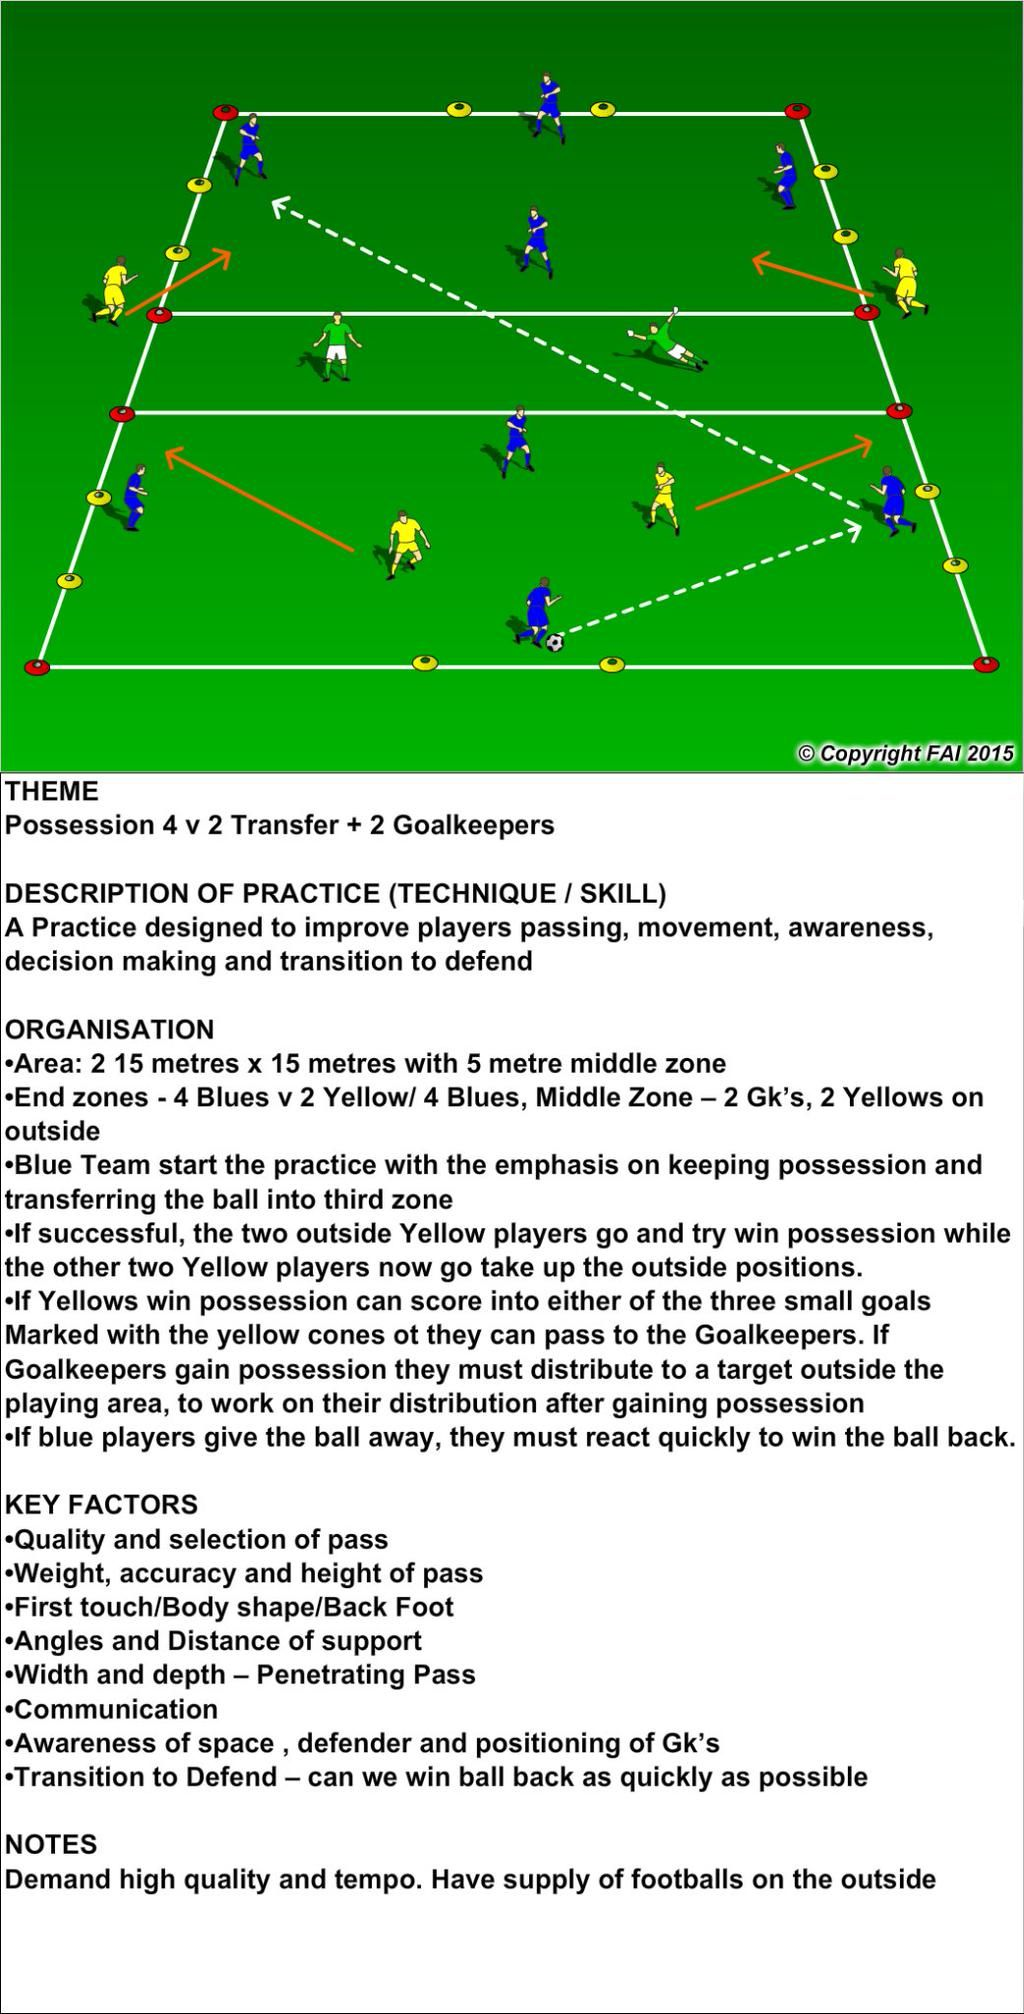 James Scott Jamesscott89com Twitter Soccer Training Drills Soccer Training Soccer Coaching Drills